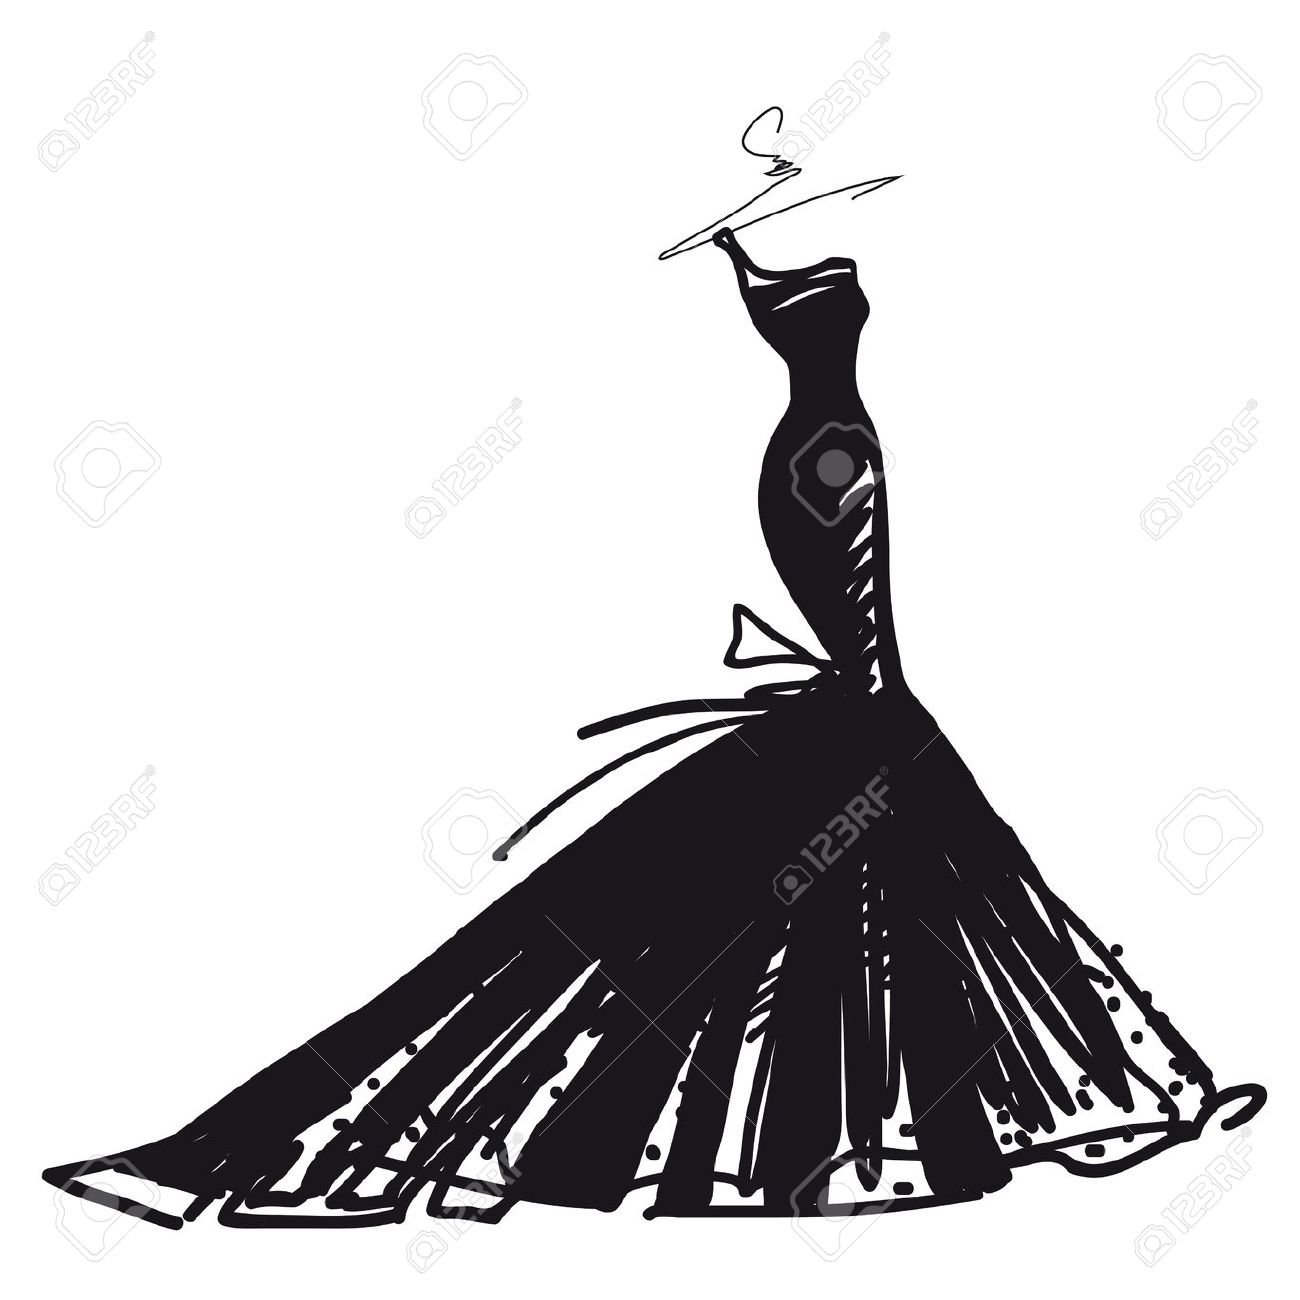 Gown clipart elegant dress Dress Search lady silhouettes of